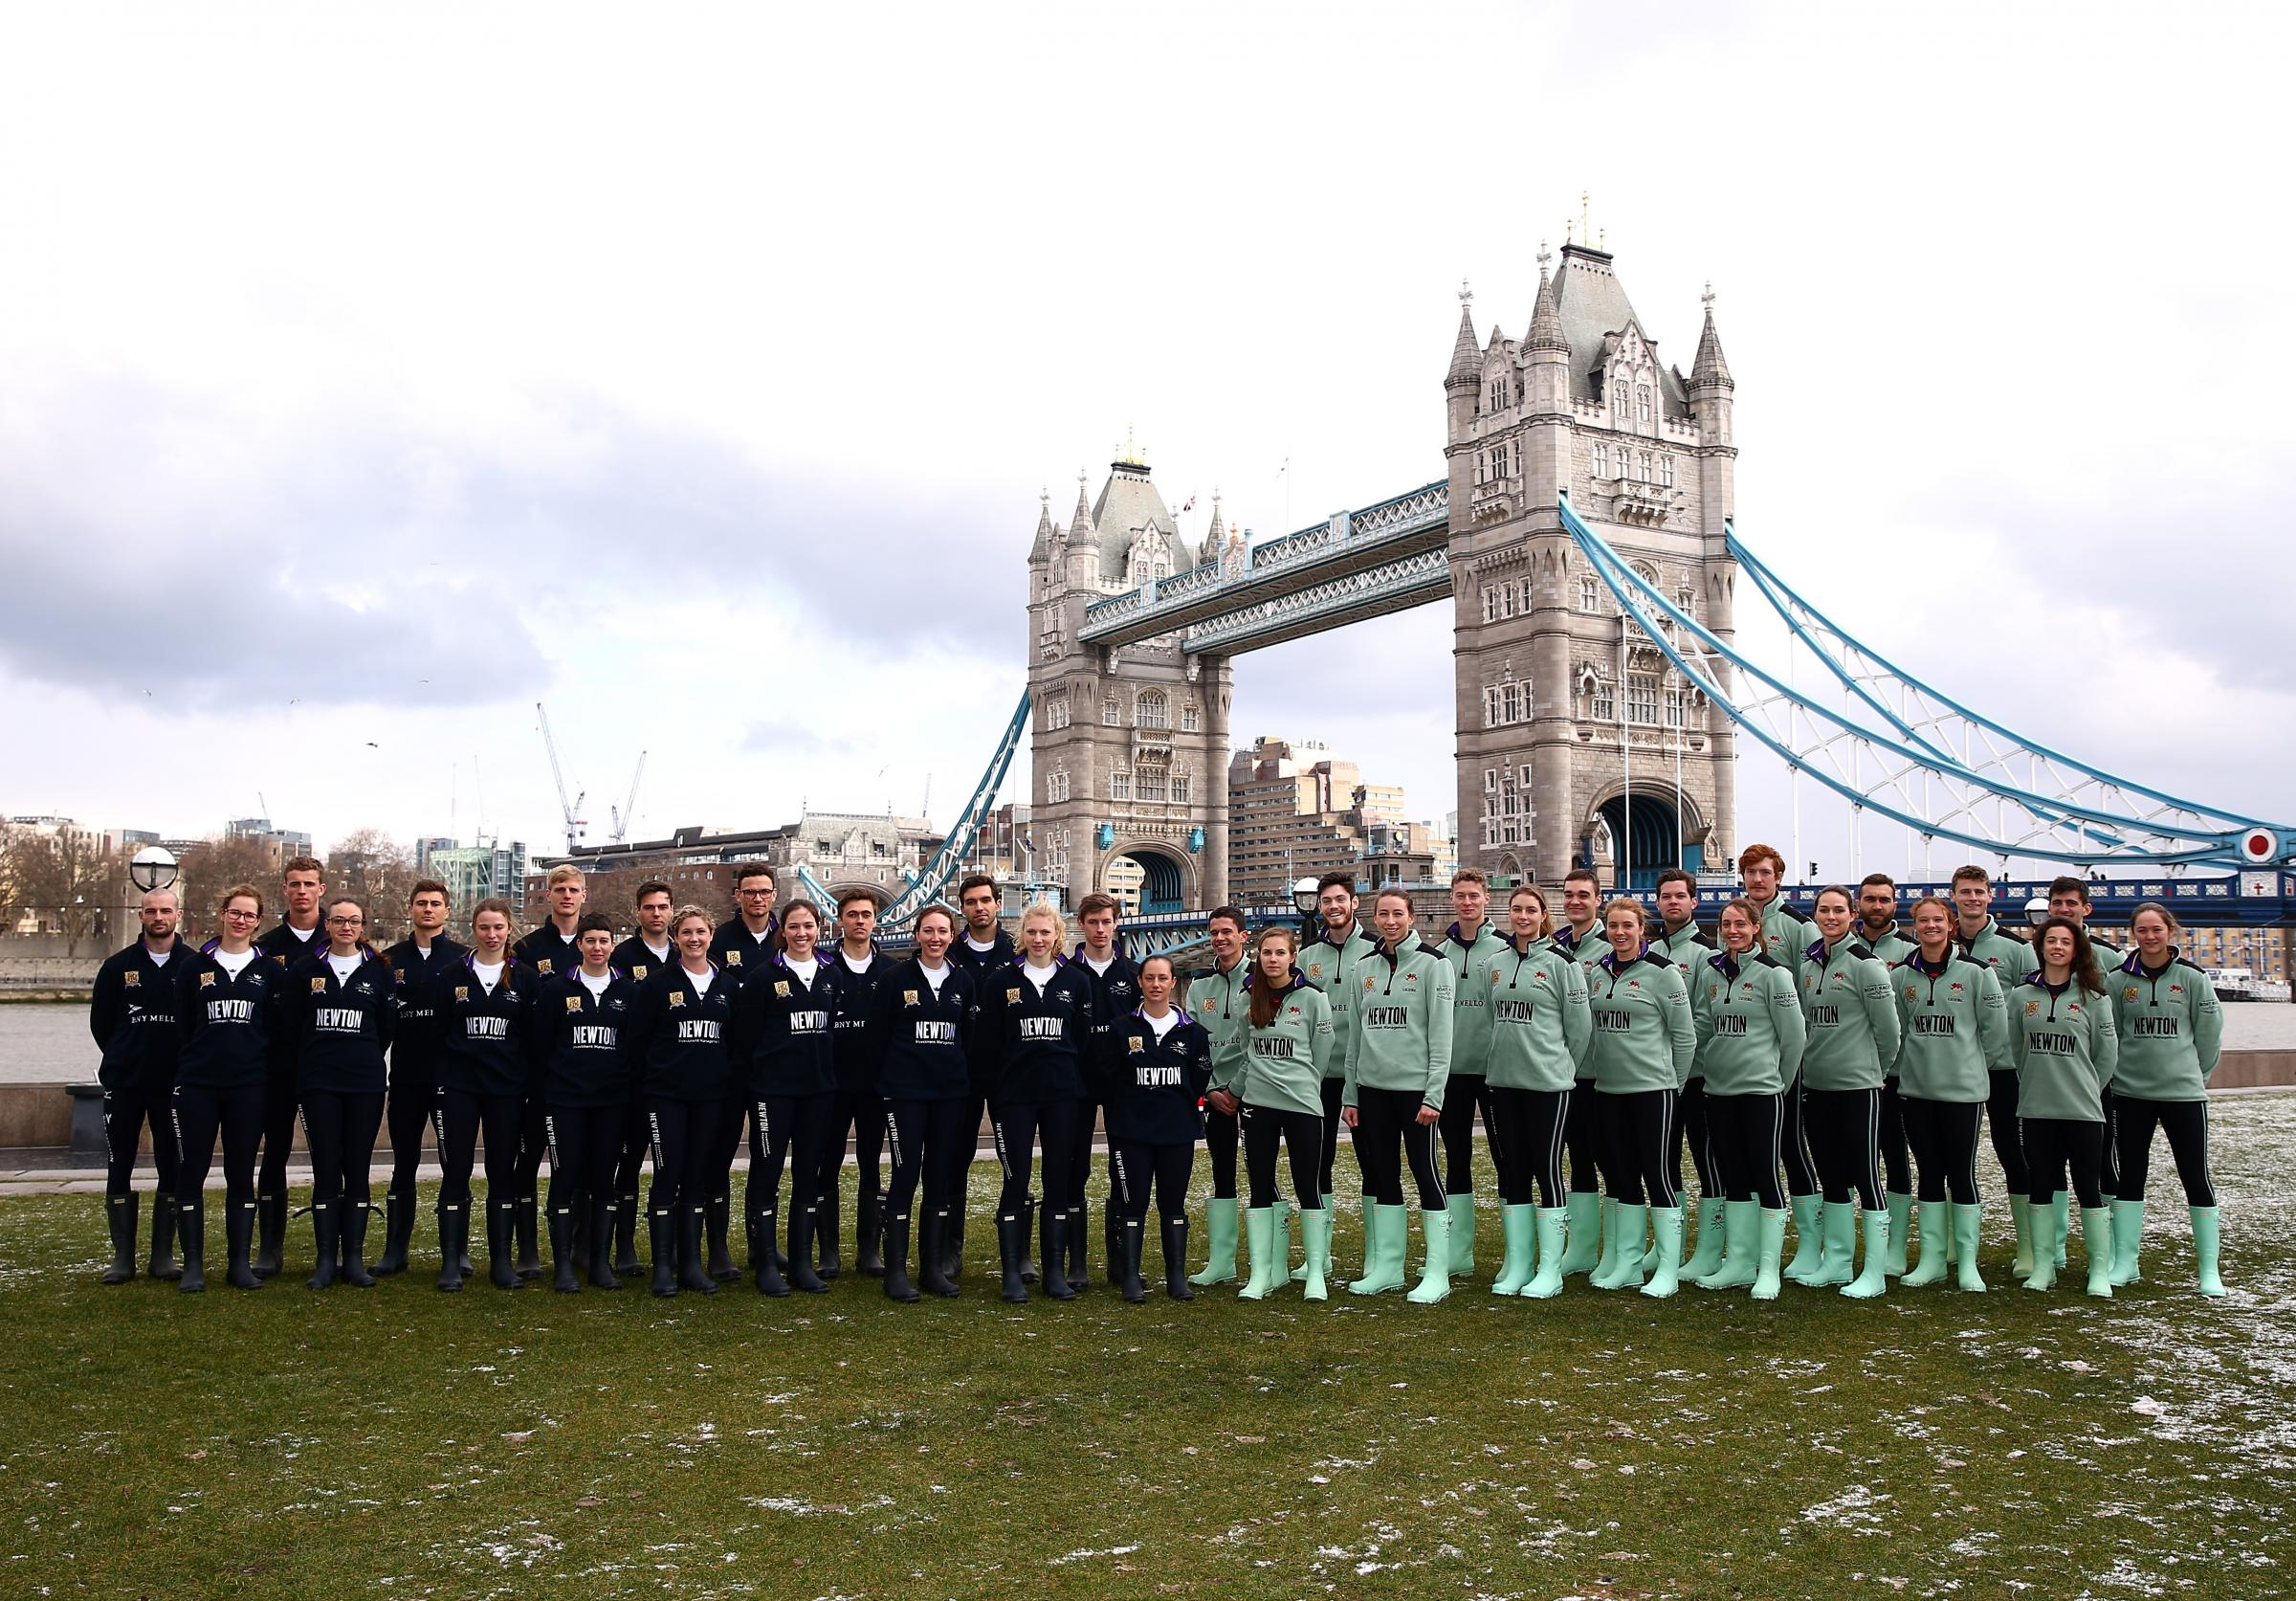 READY FOR ACTION: The Cancer Research UK Boat Race crews line up after the announcement